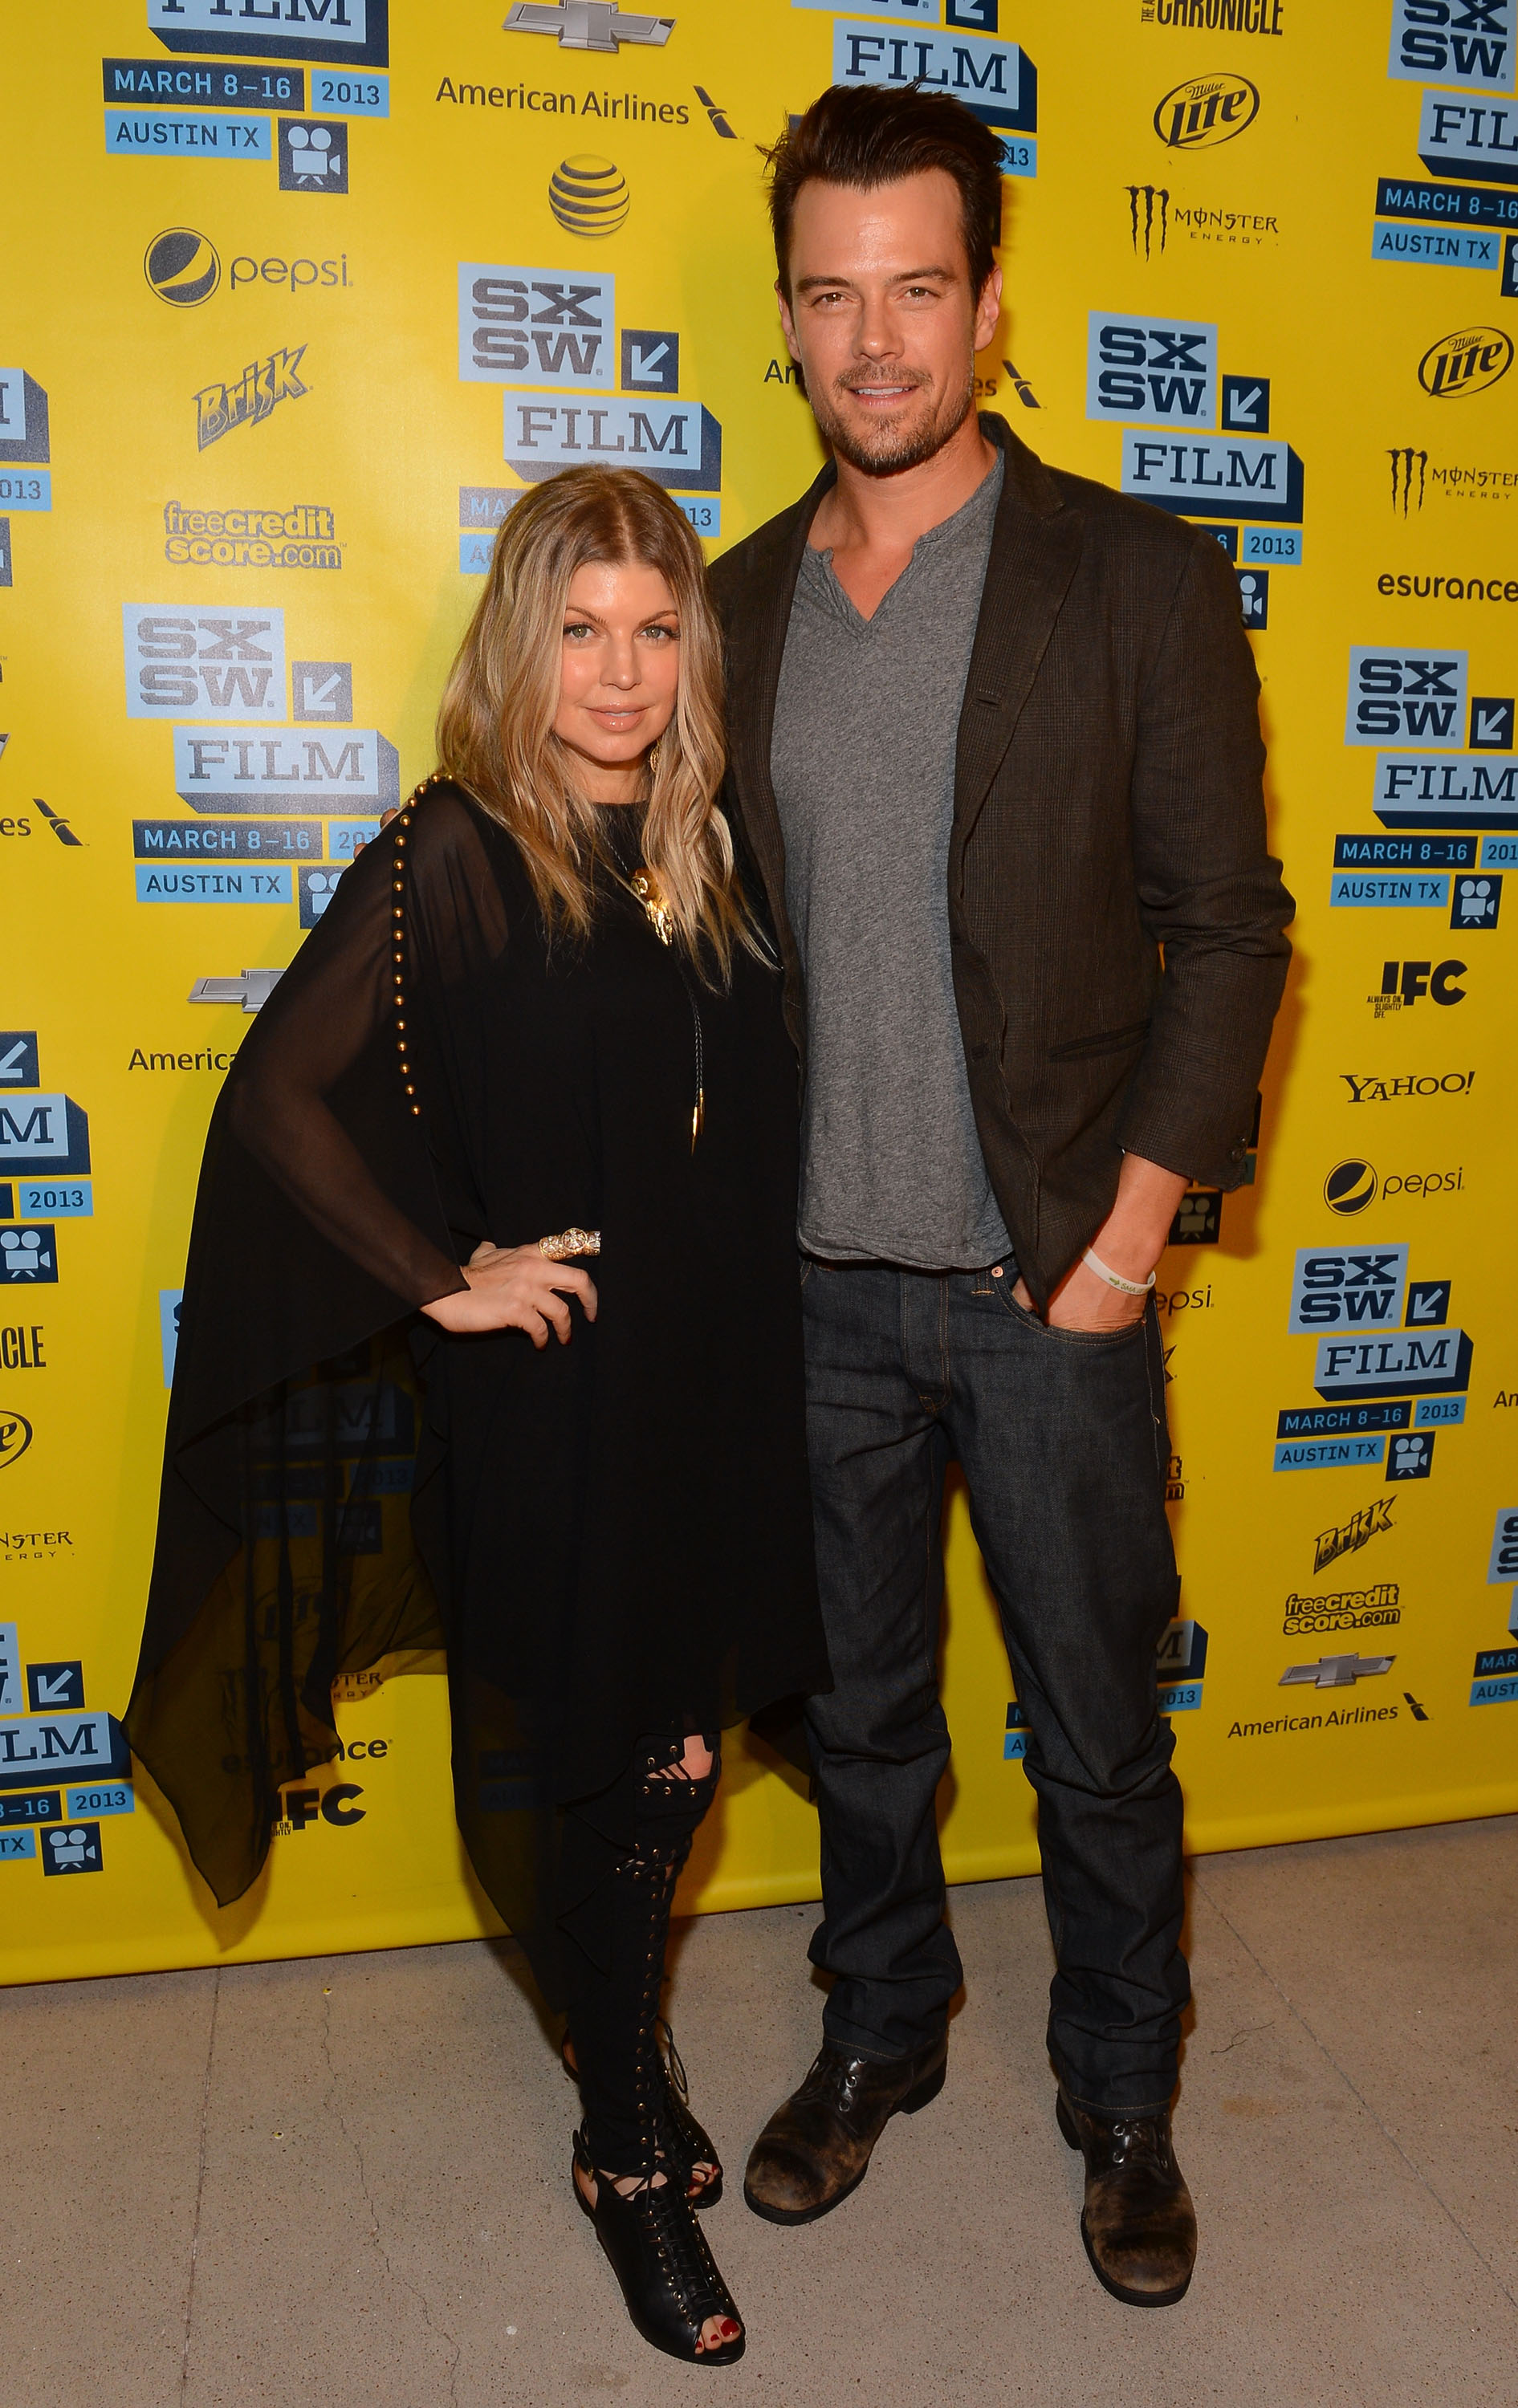 Pregnant Fergie was by her husband Josh Duhamel's side at SXSW.